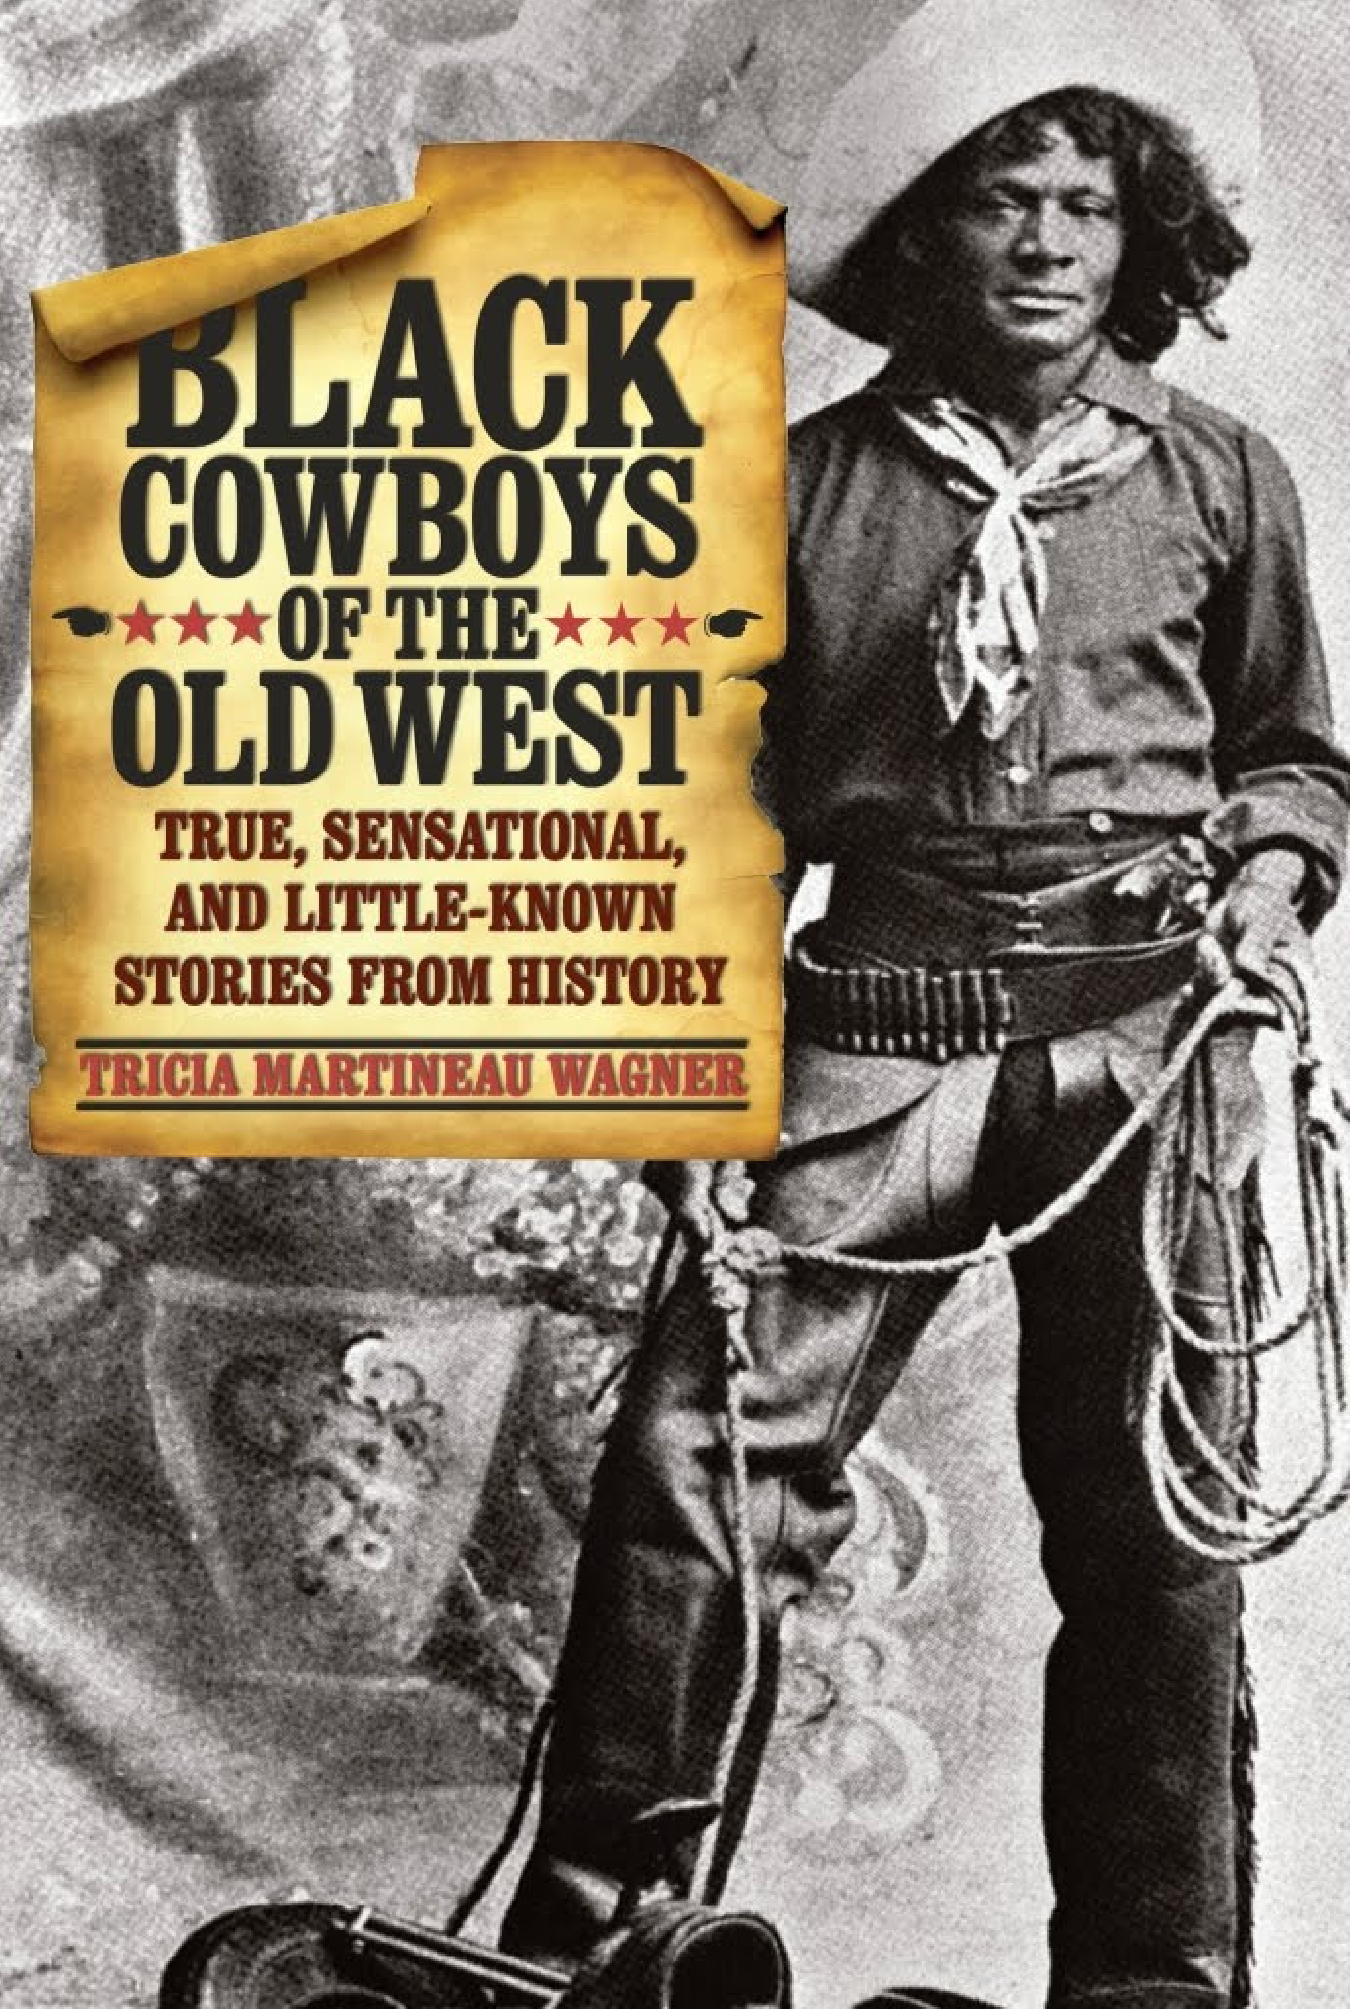 Black Cowboy 1 … an Essay in Images | My Favorite Westerns